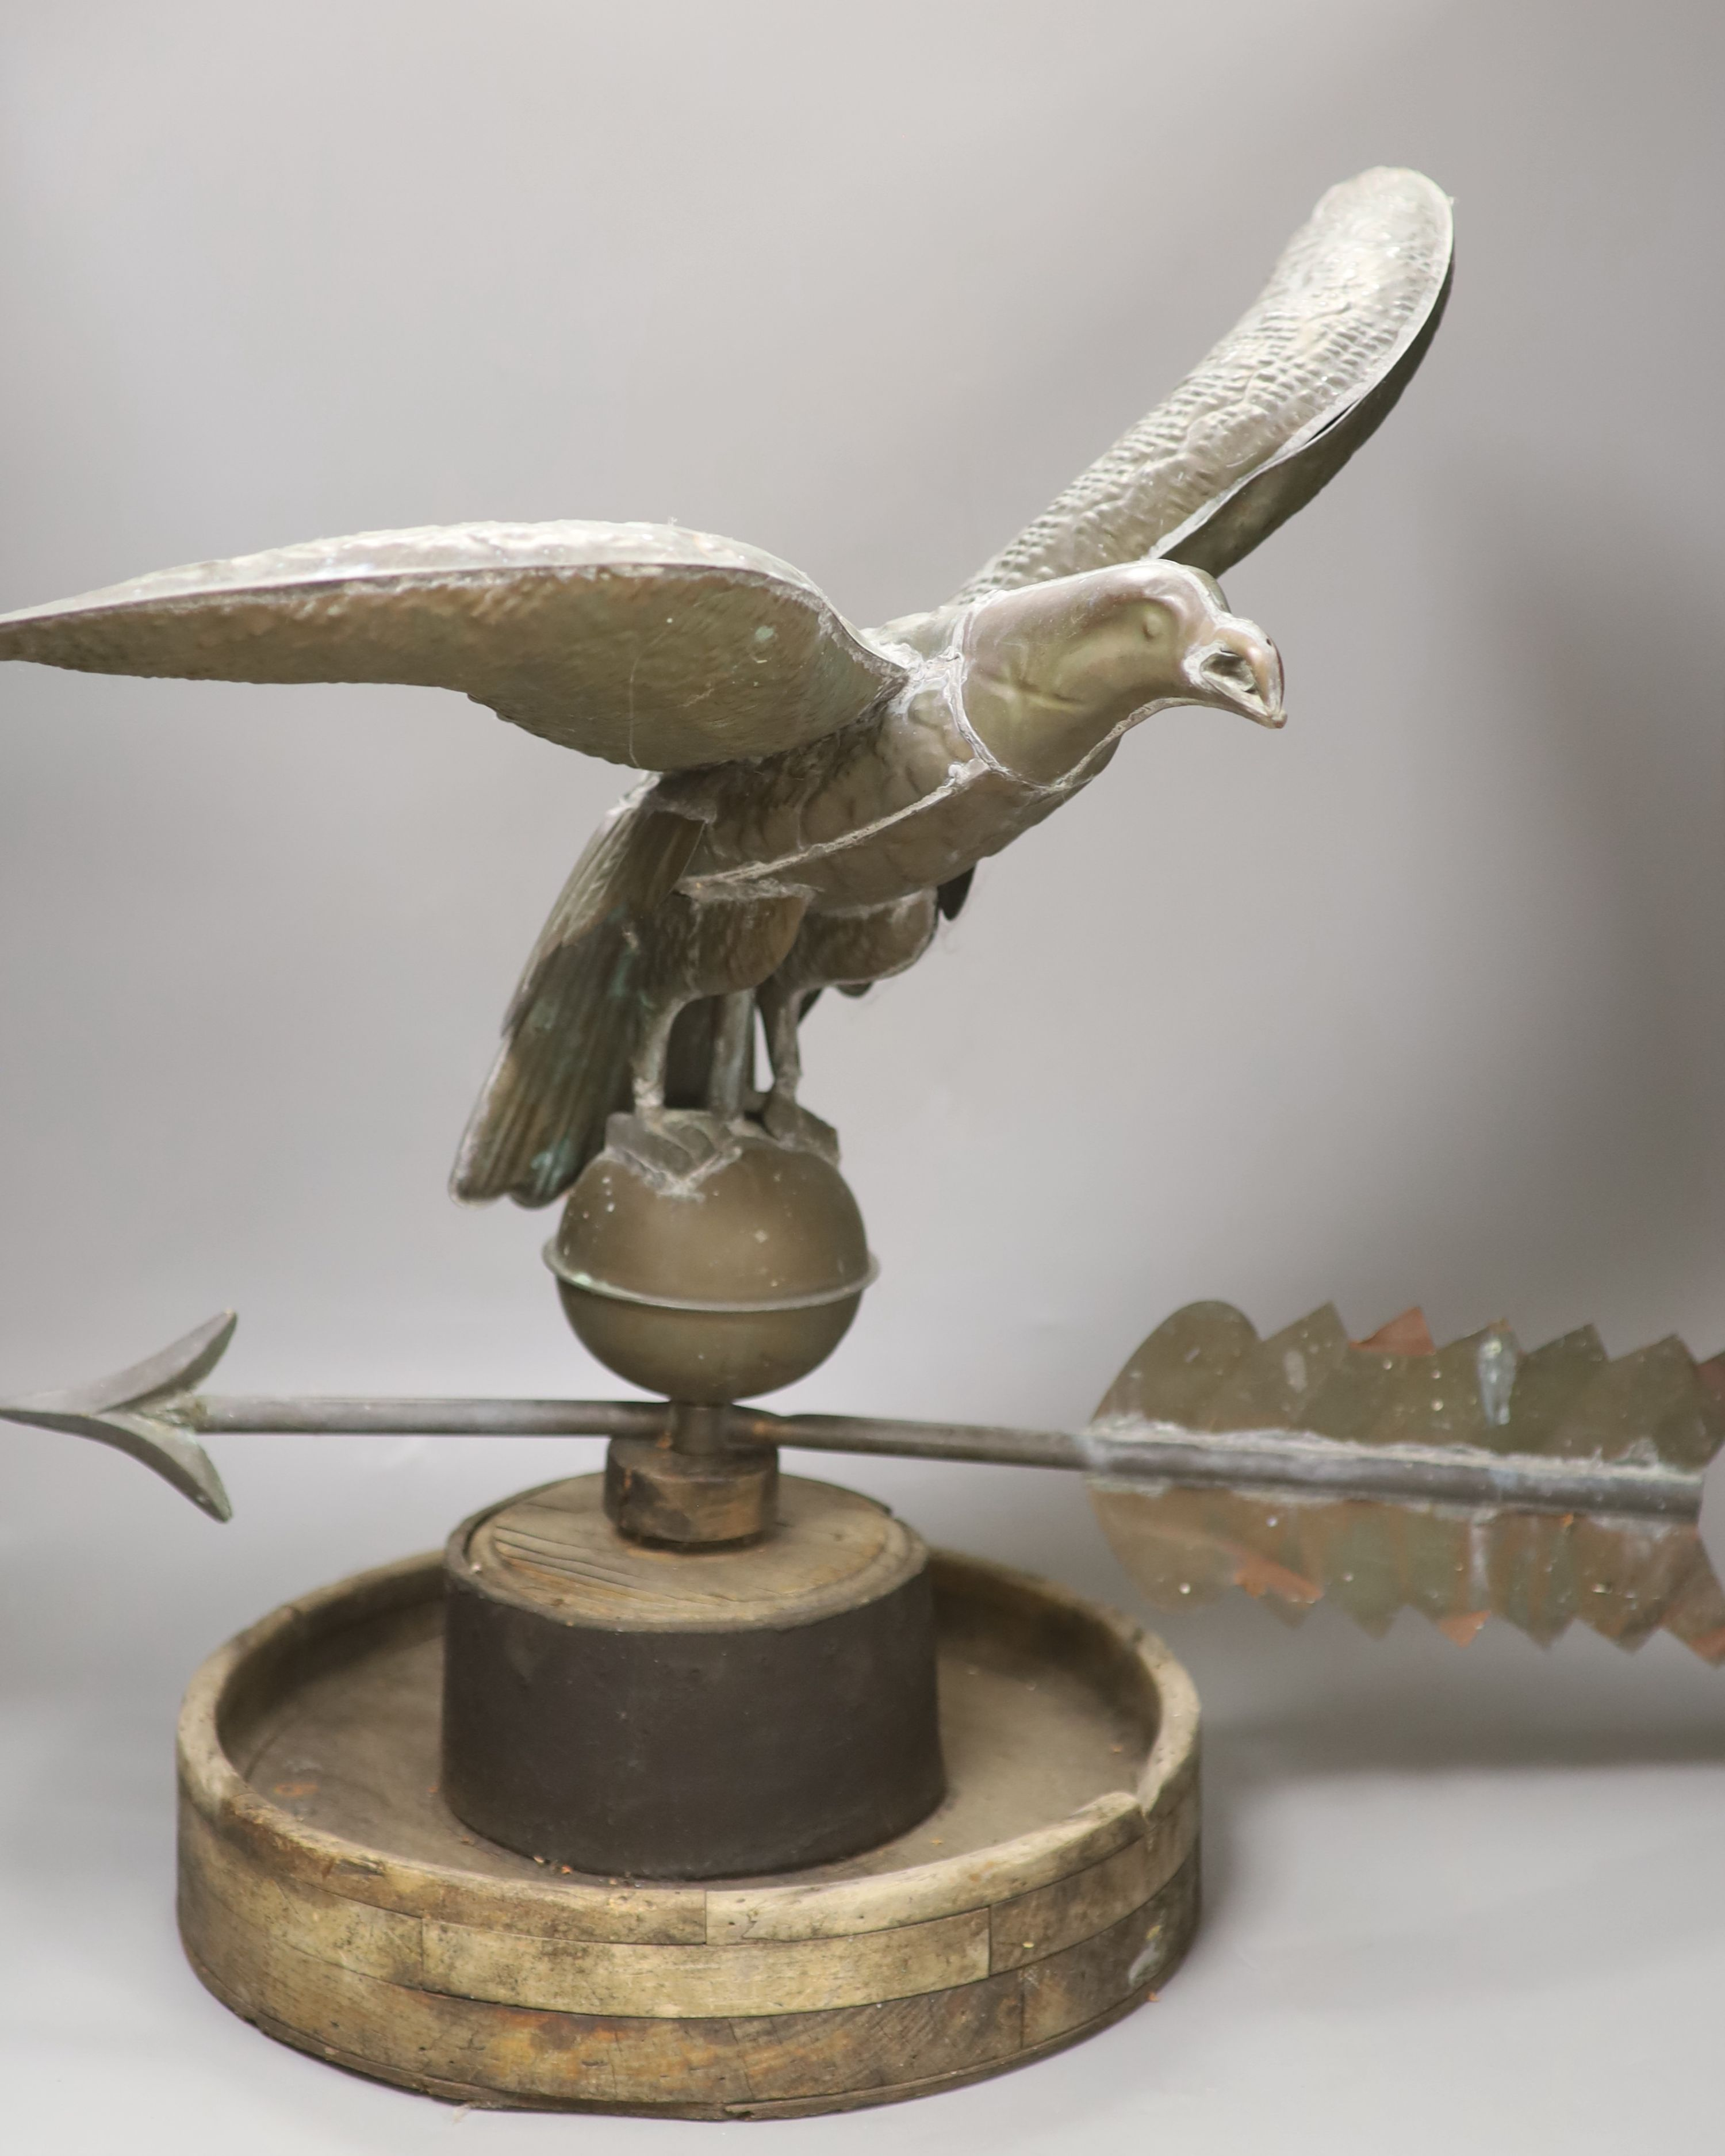 A 19th century American copper weather vane, modelled as an eagle, on an associated wooden base,